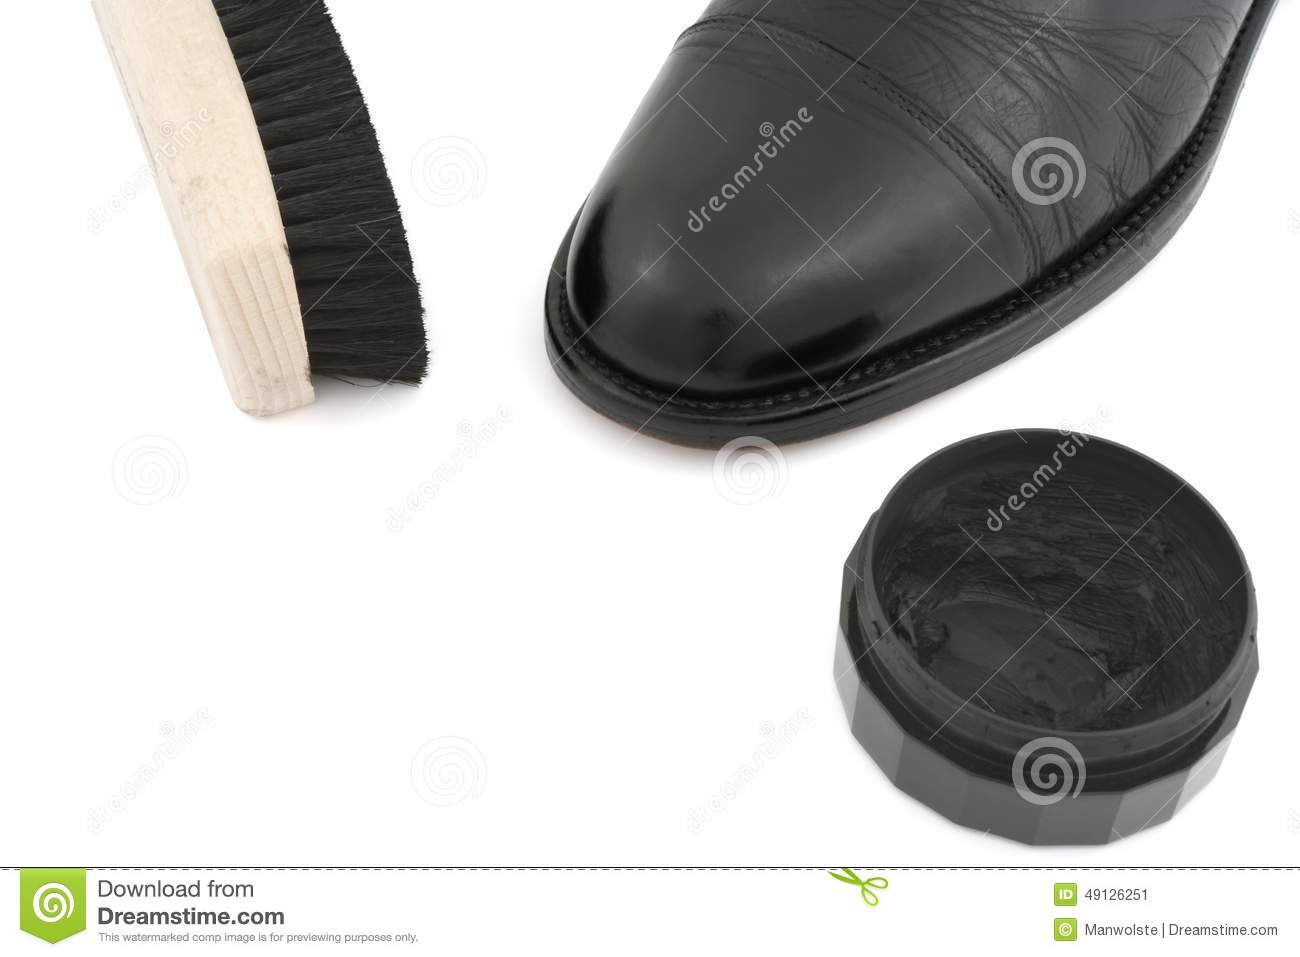 how to clean black leather shoes properly